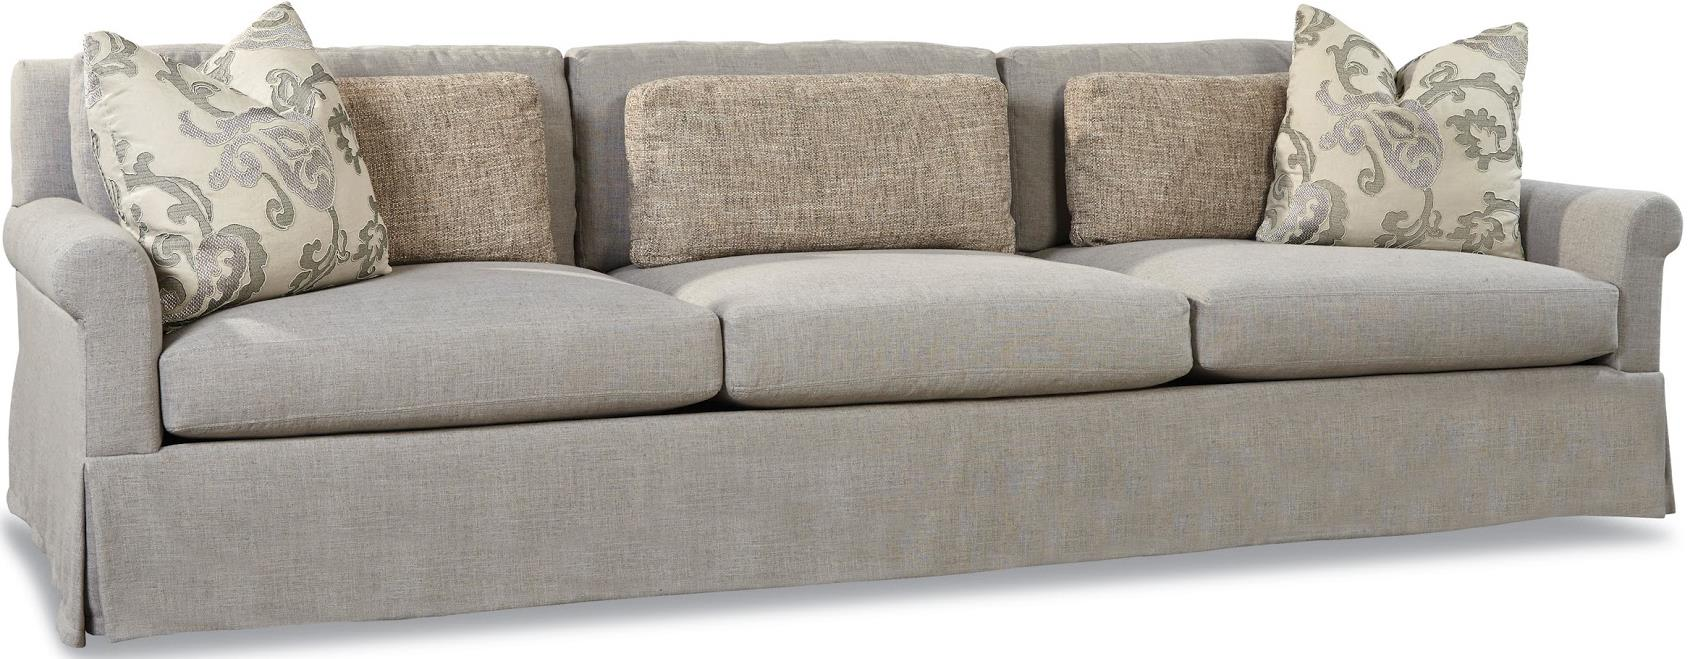 Connor Sofa by Huntington House at Belfort Furniture